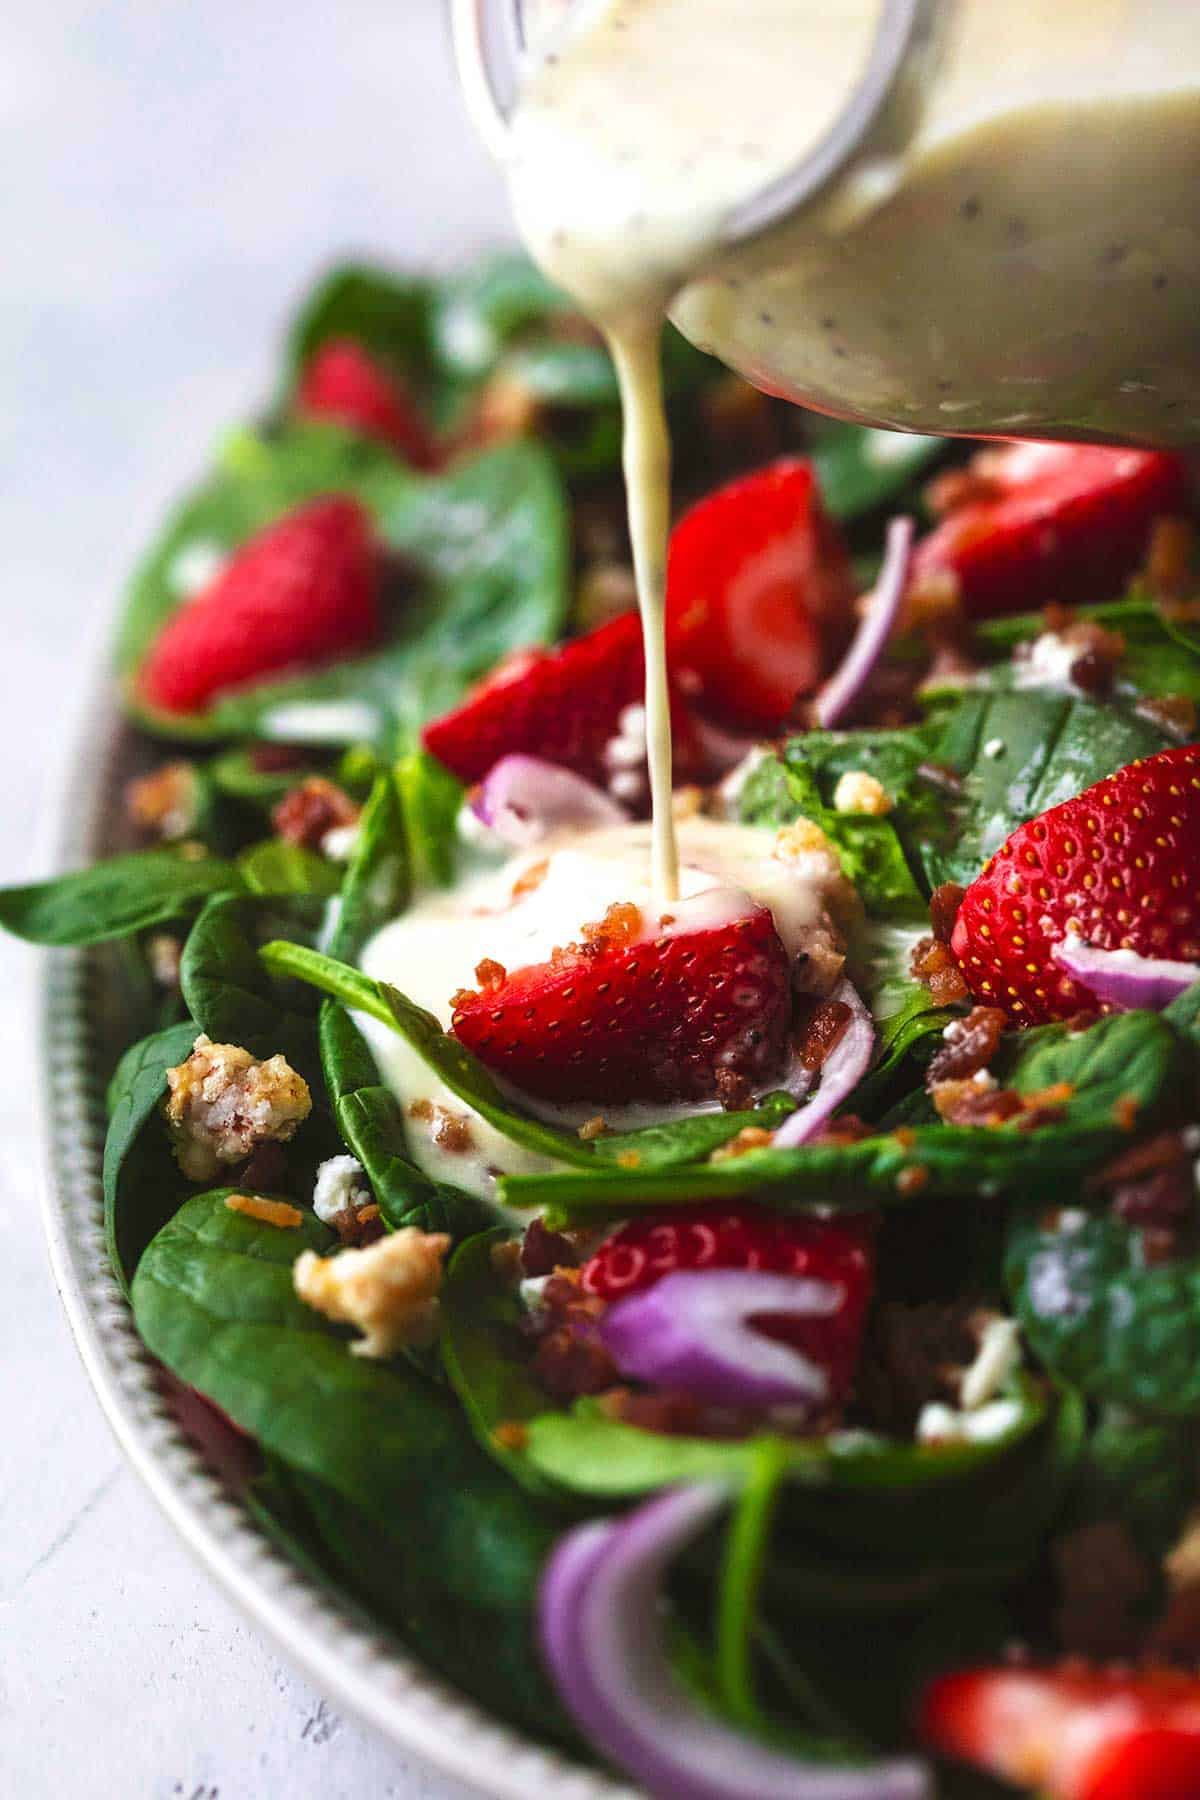 up close view of creamy white salad dressing being poured onto strawberries in spinach salad with red onions and bacon crumbles